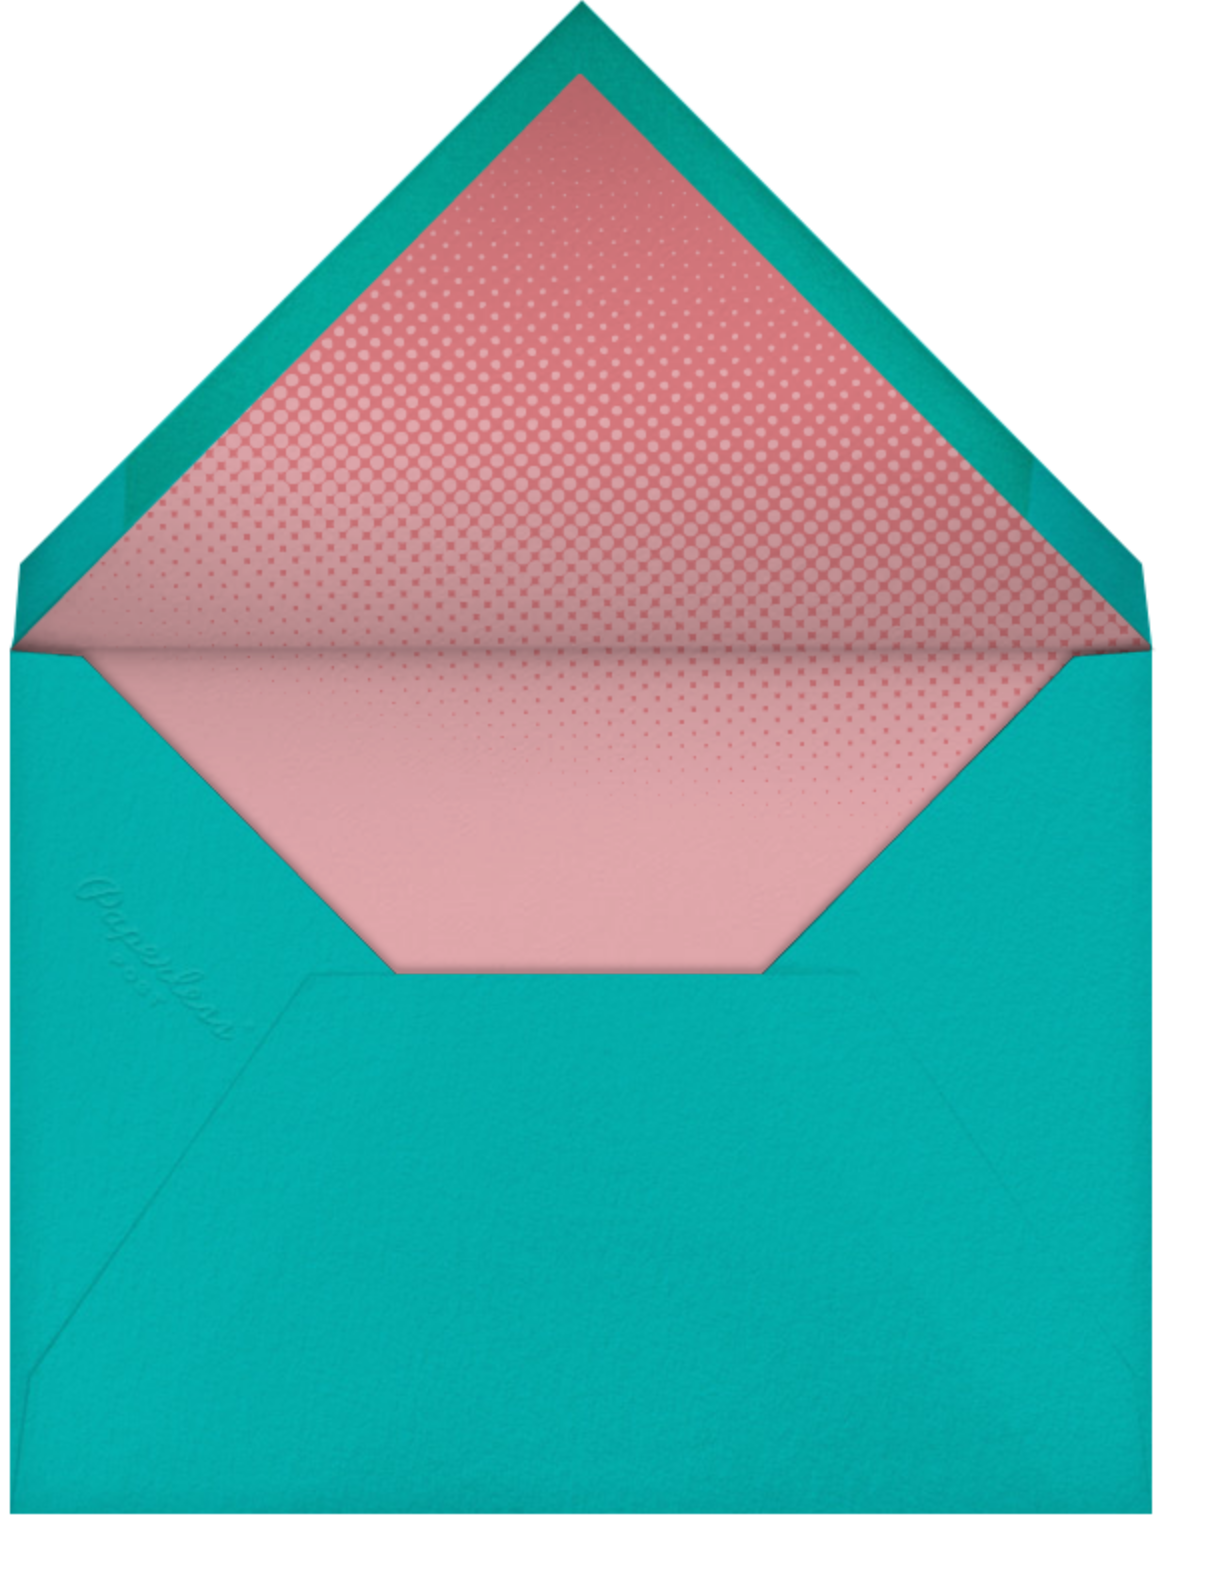 Quilt Block - Paperless Post - Professional events - envelope back